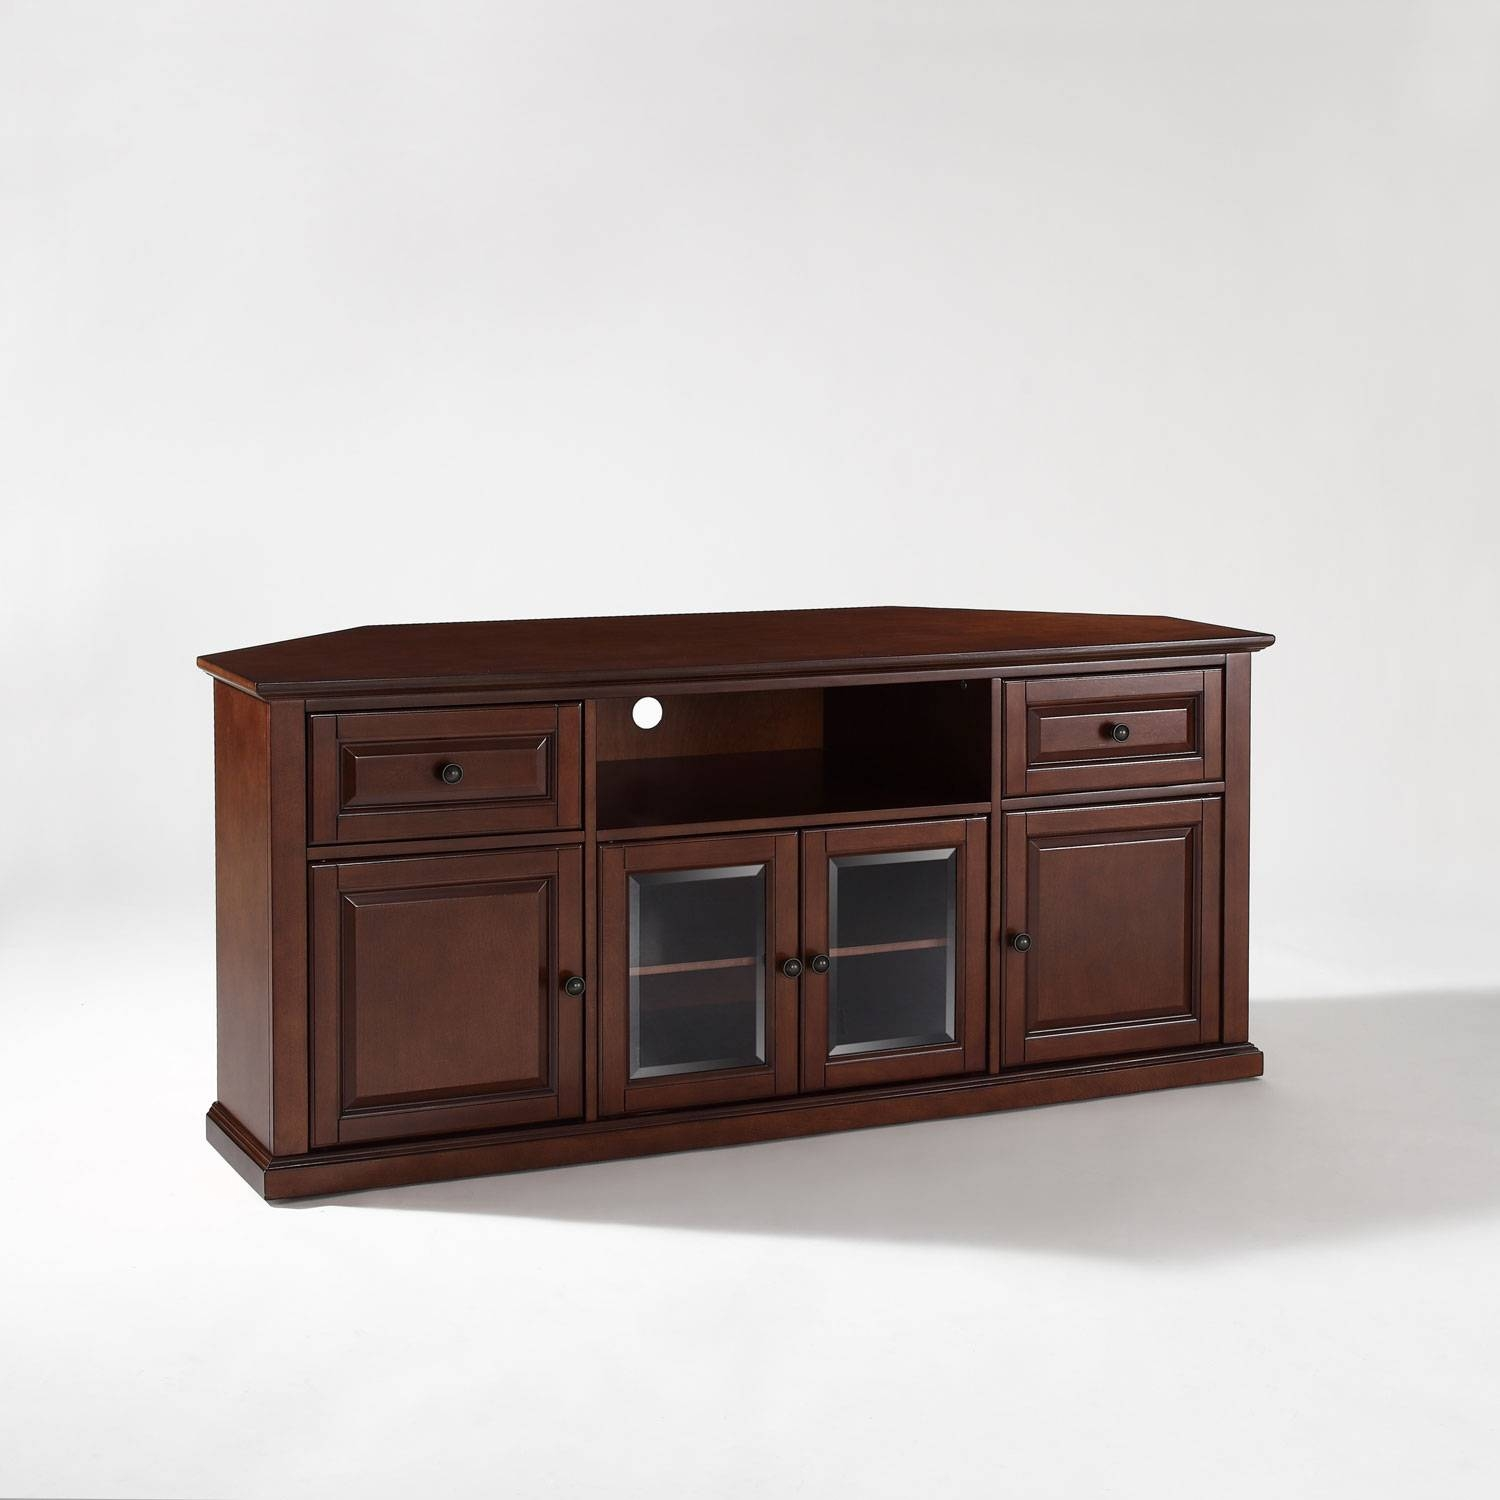 Tv Stands & Cabinets On Sale | Bellacor With Corner Tv Cabinets For Flat Screens With Doors (View 10 of 15)